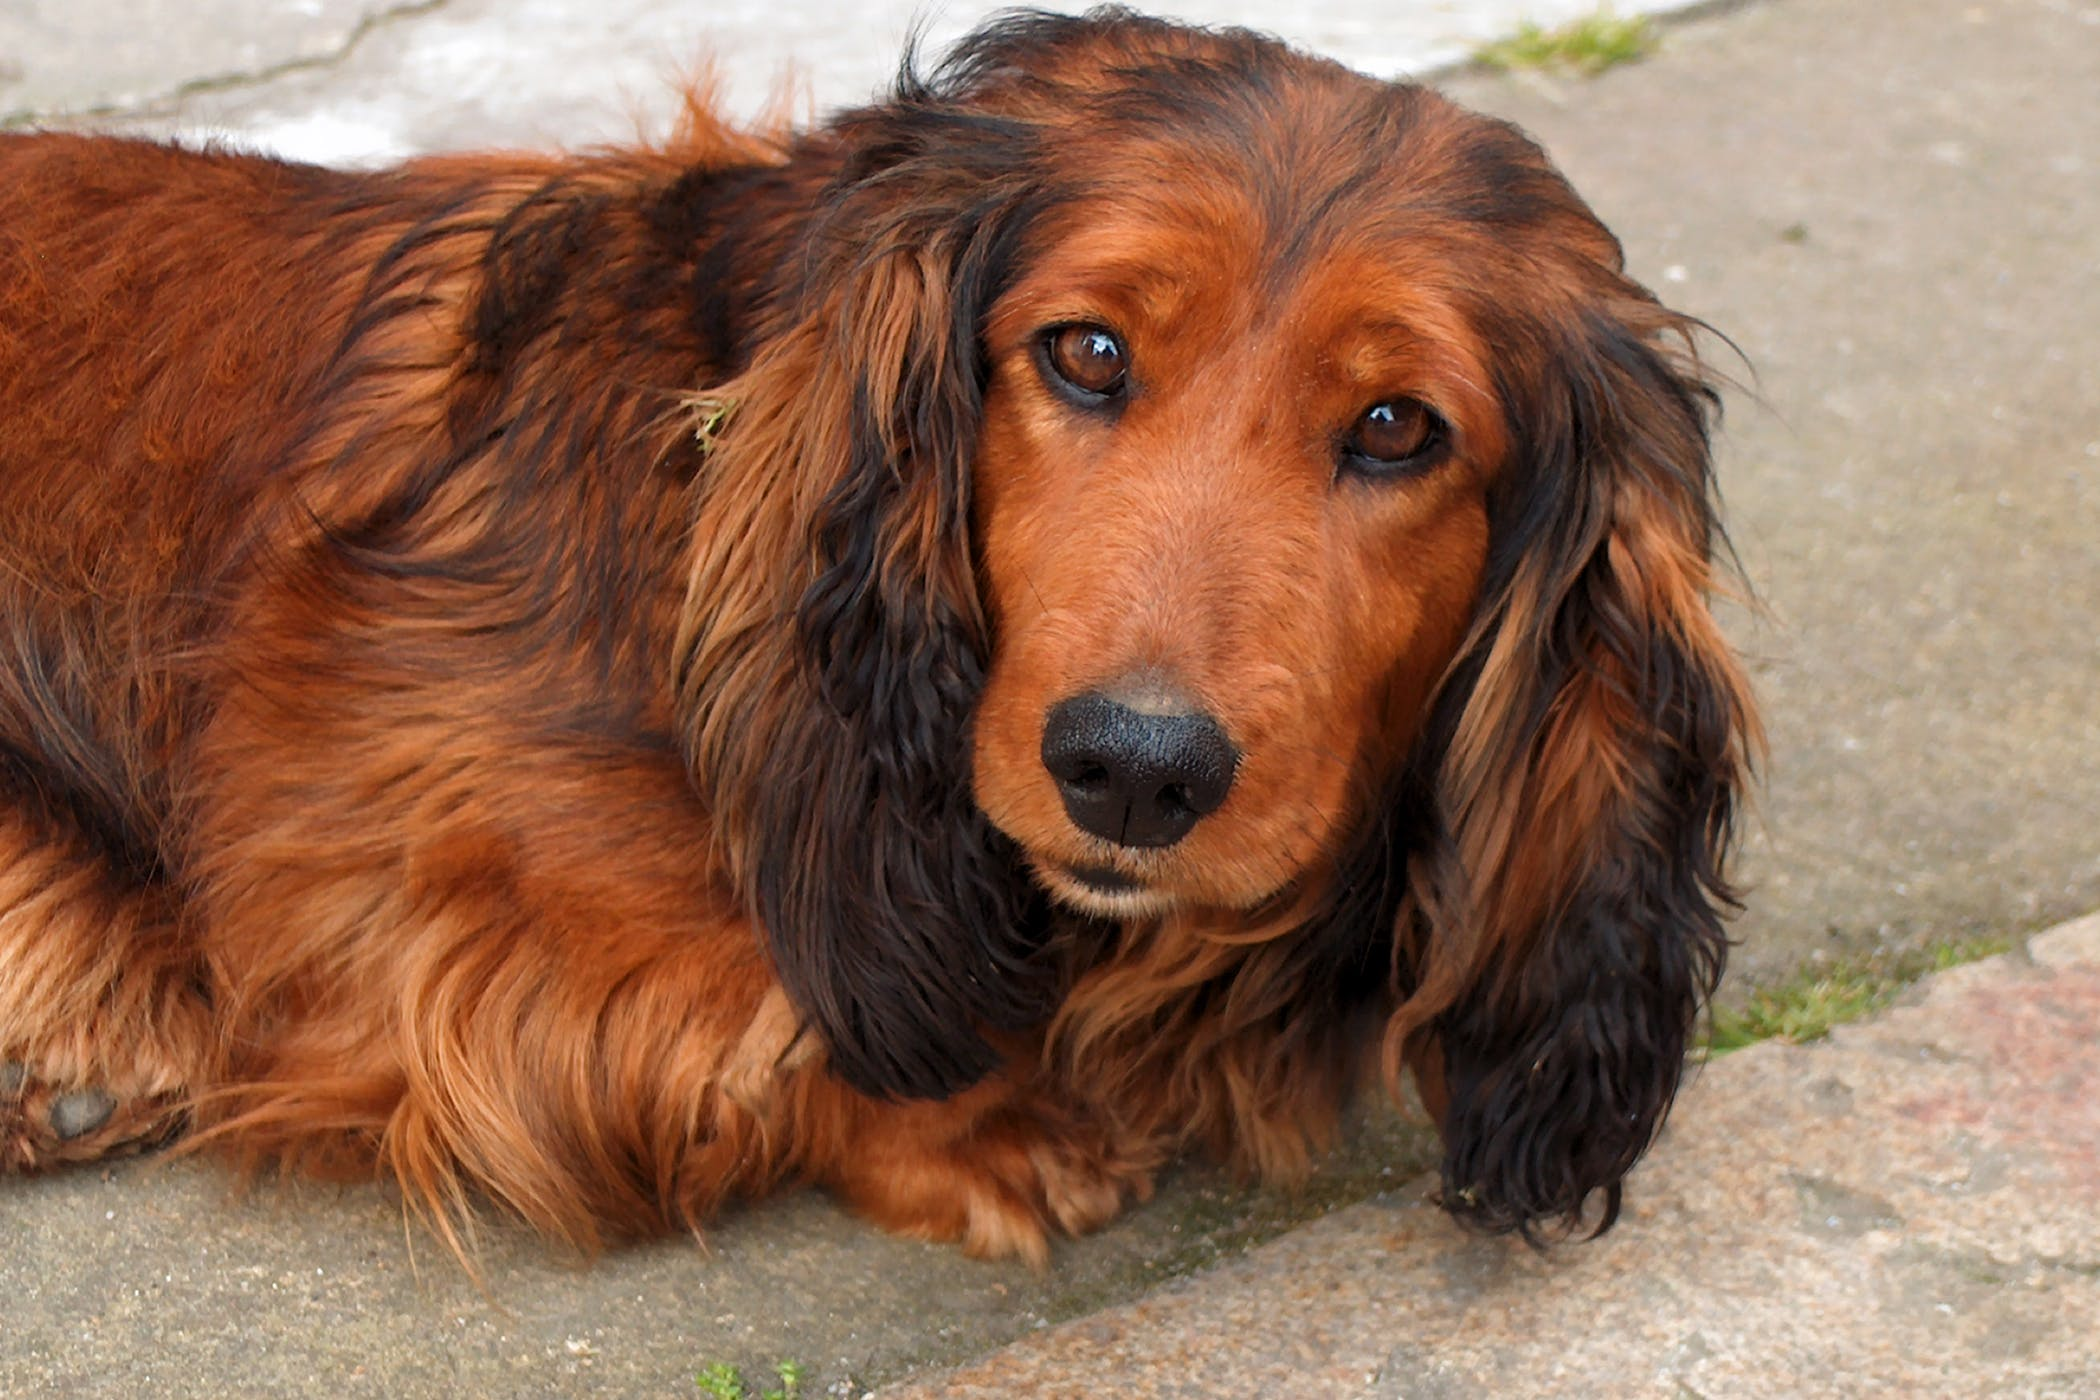 Uterine Prolapse Reduction in Dogs